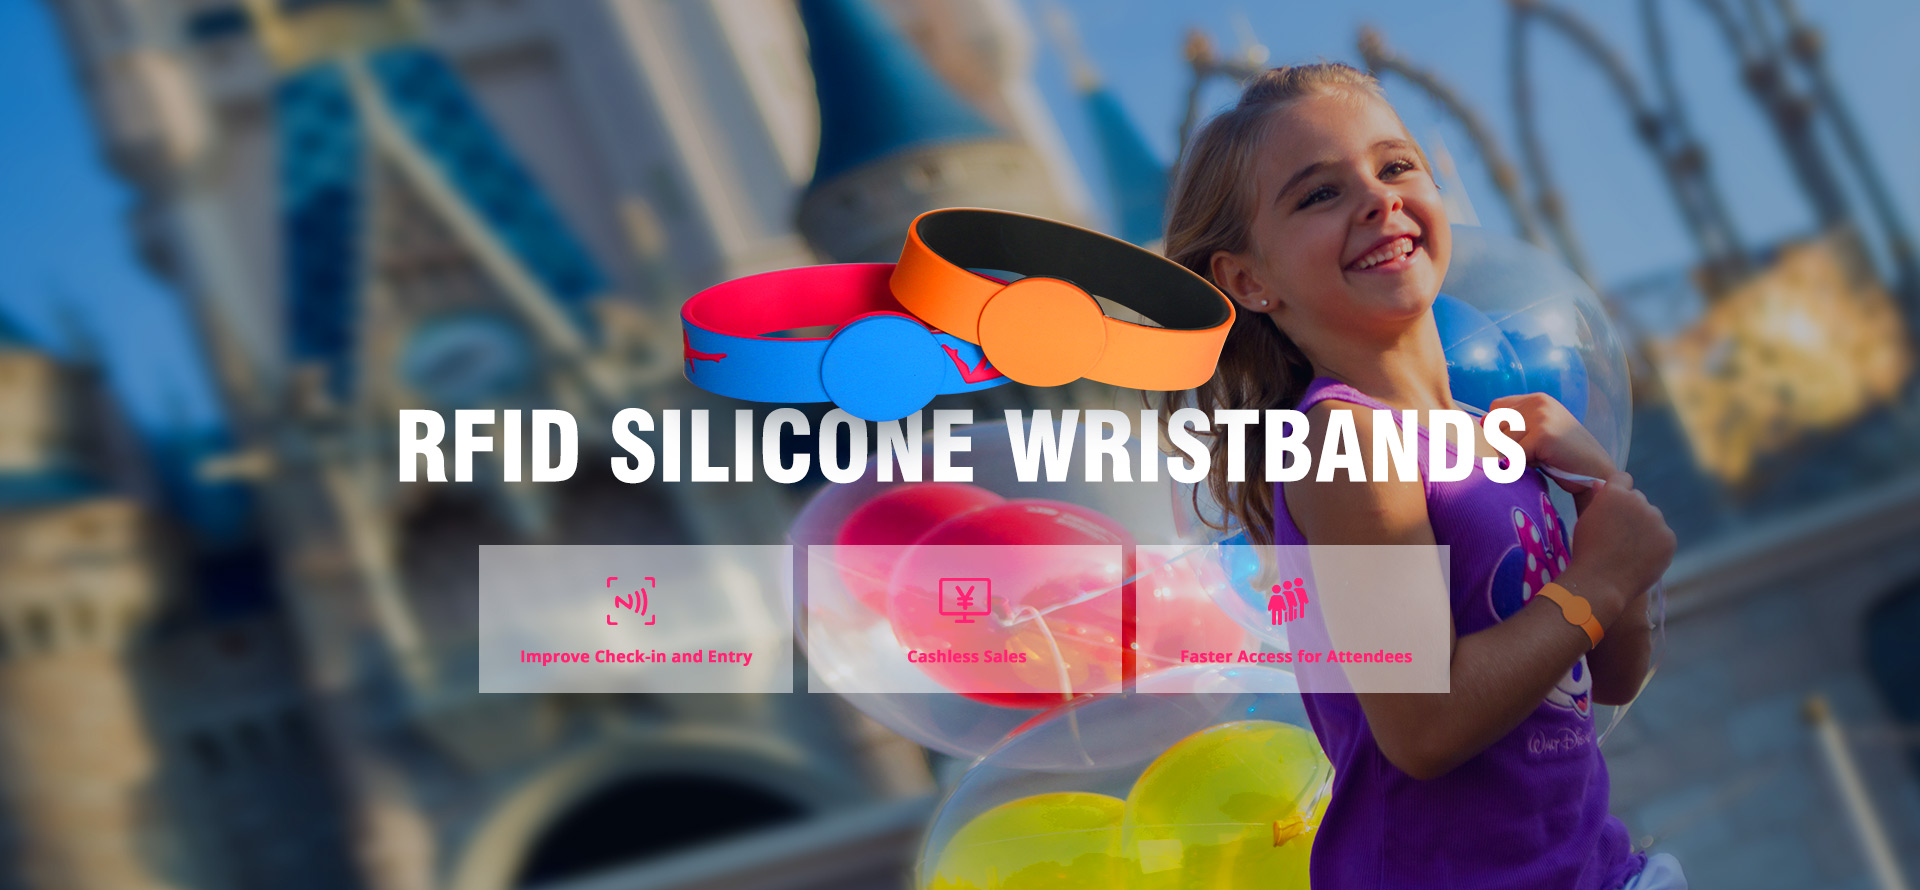 Buy RFID Silicone Wristband Products from rfidsilicone.com